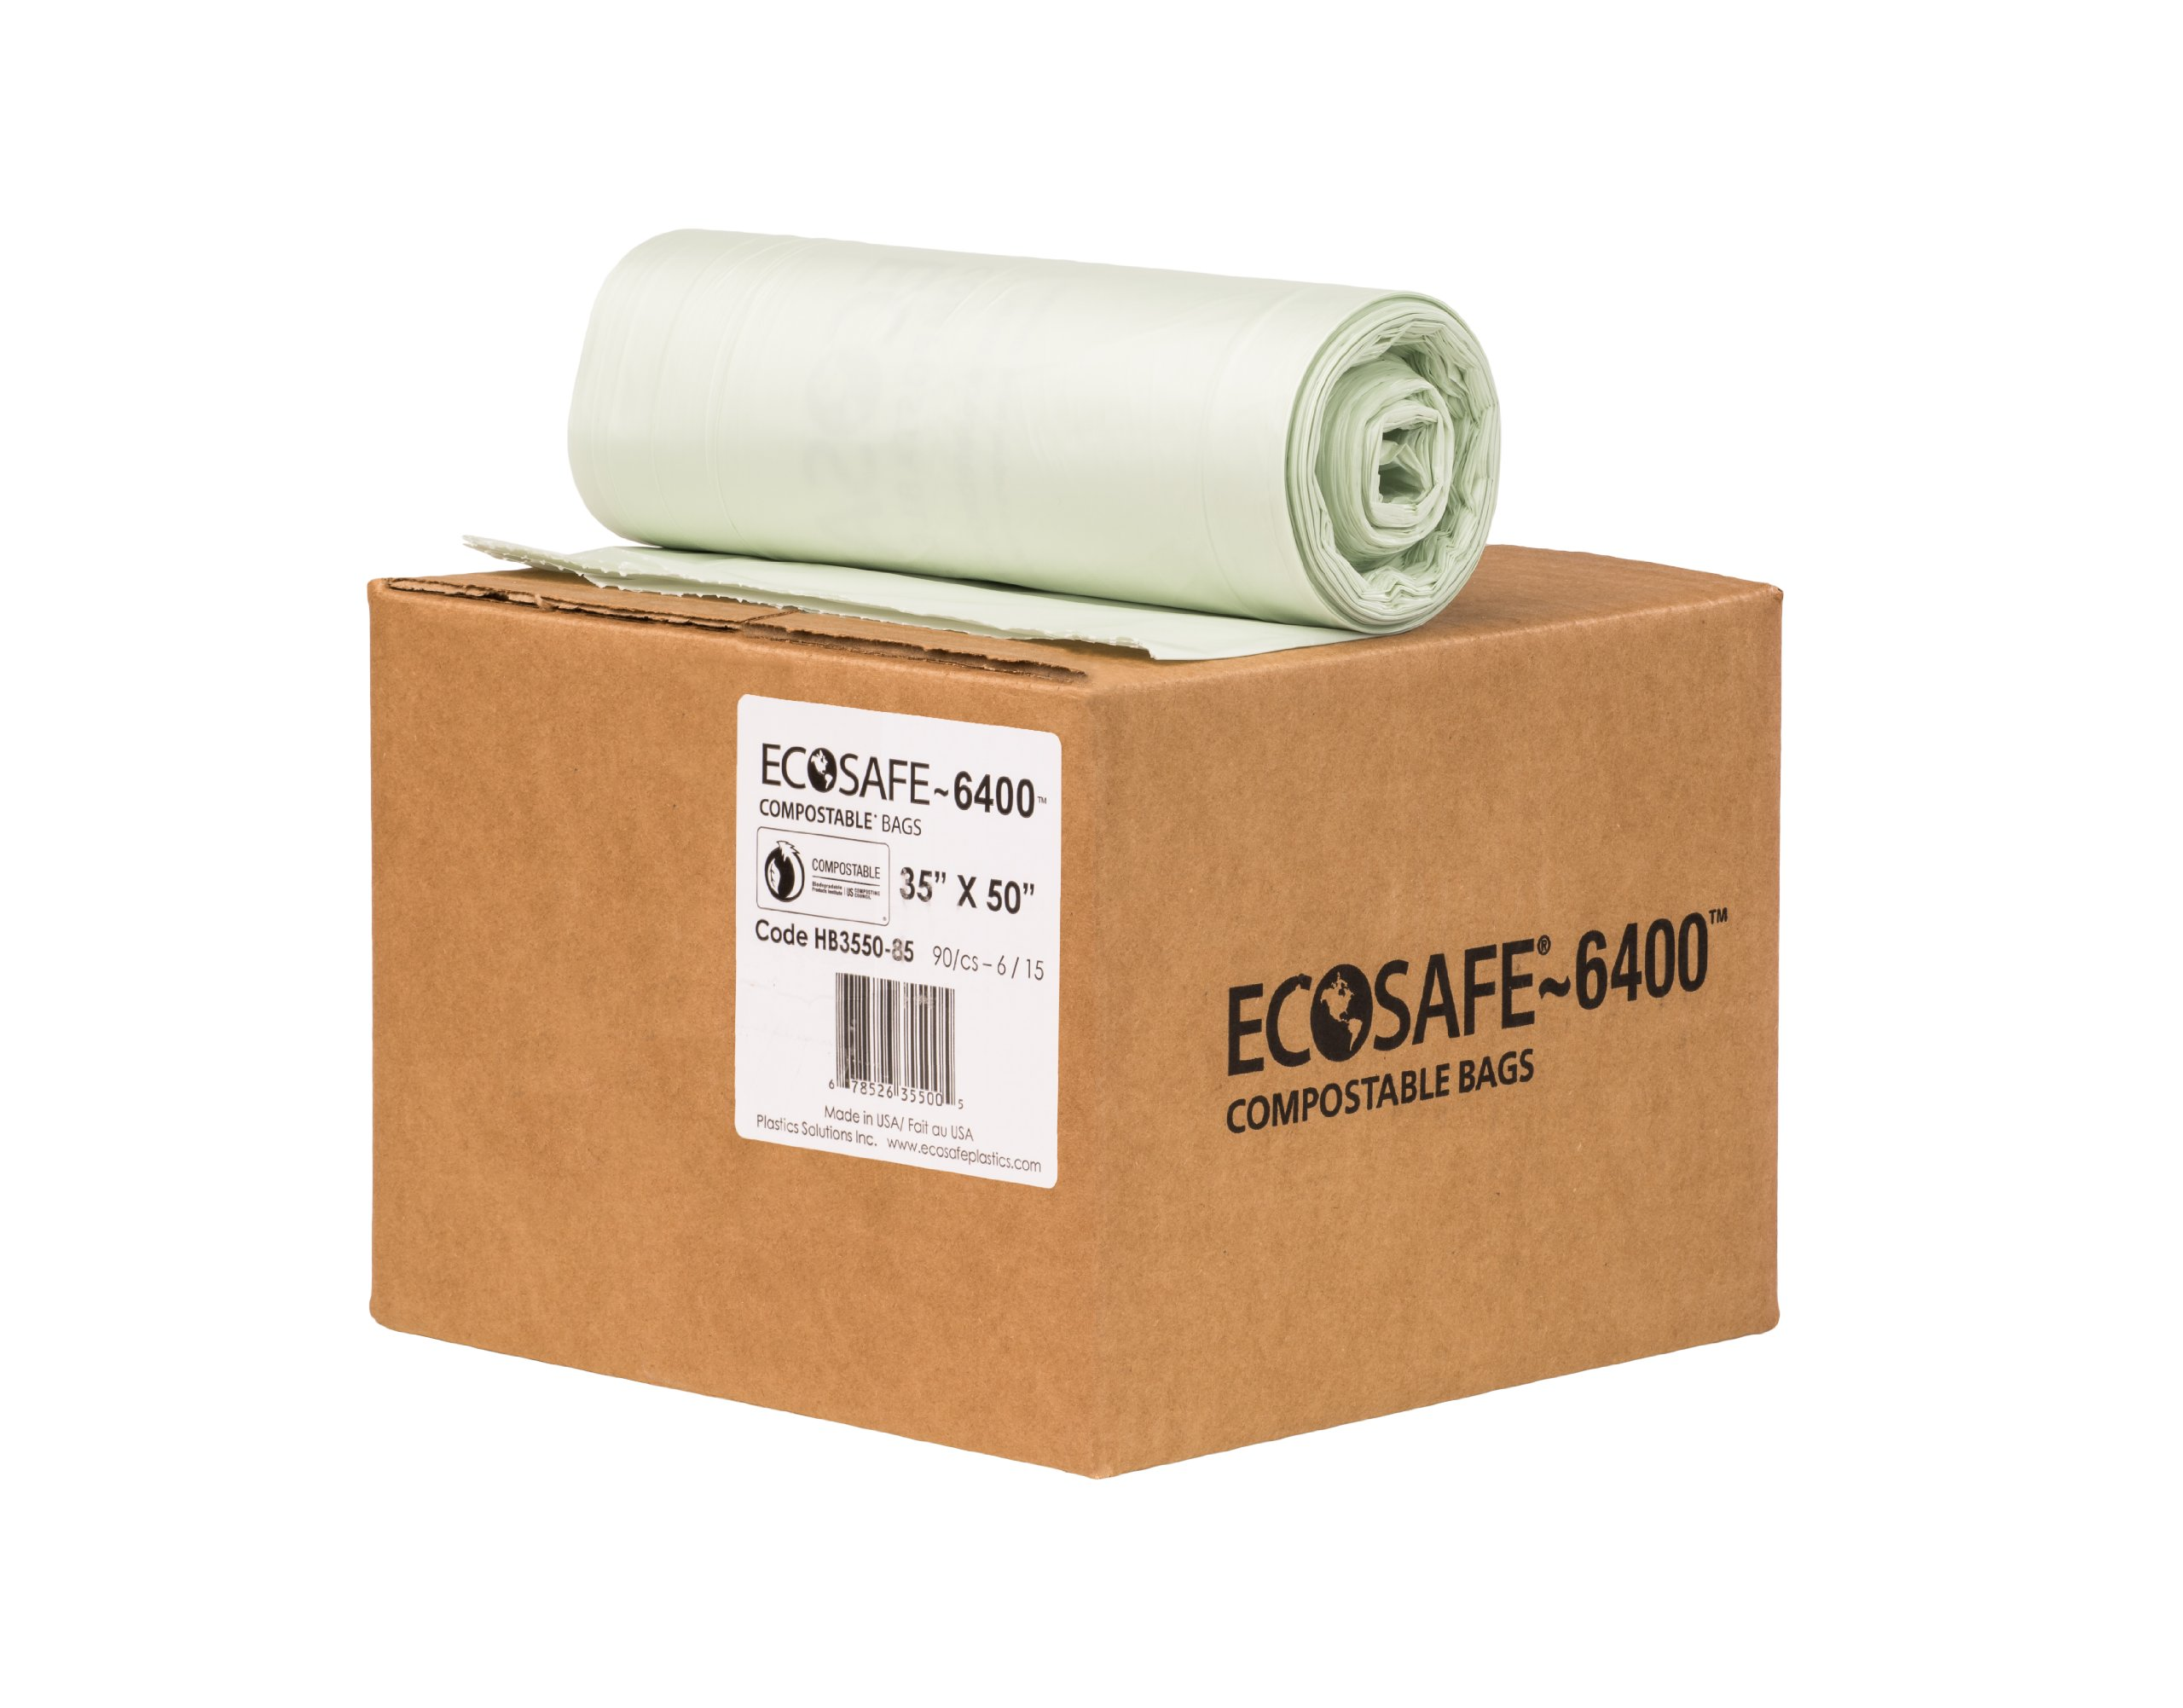 EcoSafe-6400 HB3550-85 Compostable Bag, Certified Compostable, 45-Gallon, Green (Pack of 90) by EcoSafe